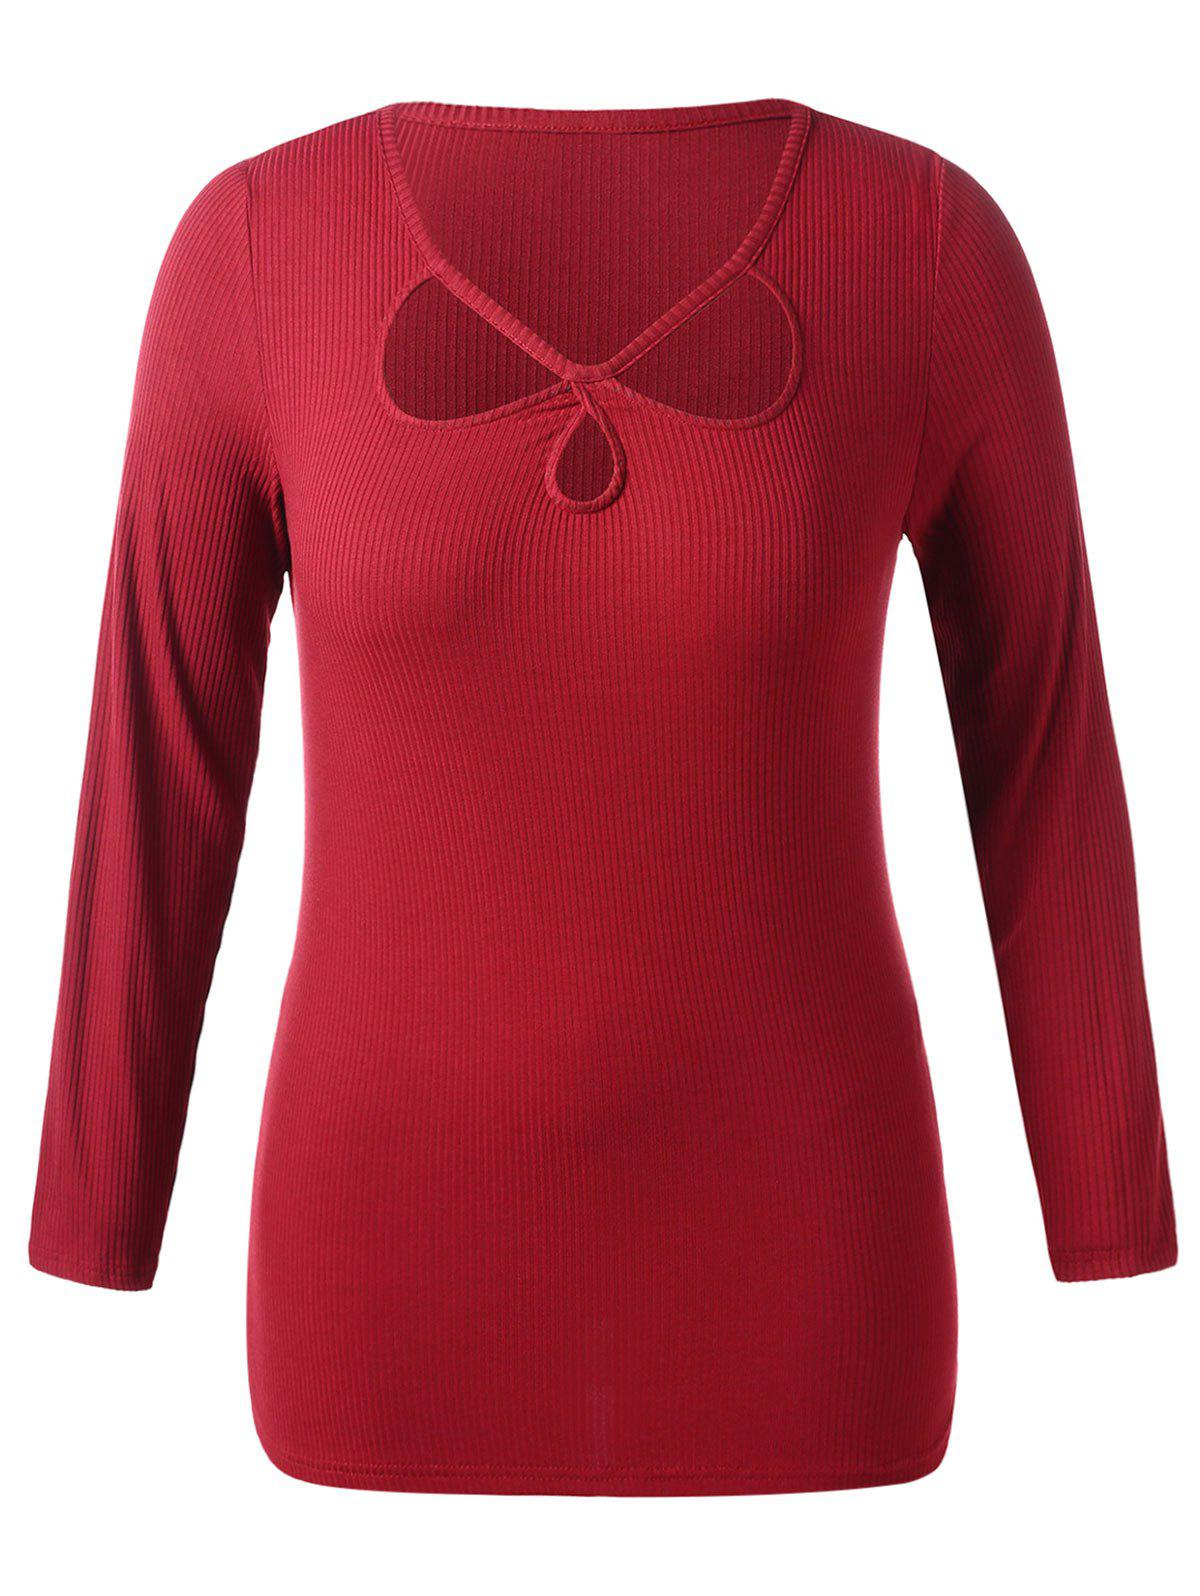 Plus Size Cut Out Long Sleeve Ribbed T-shirt - RED 1X